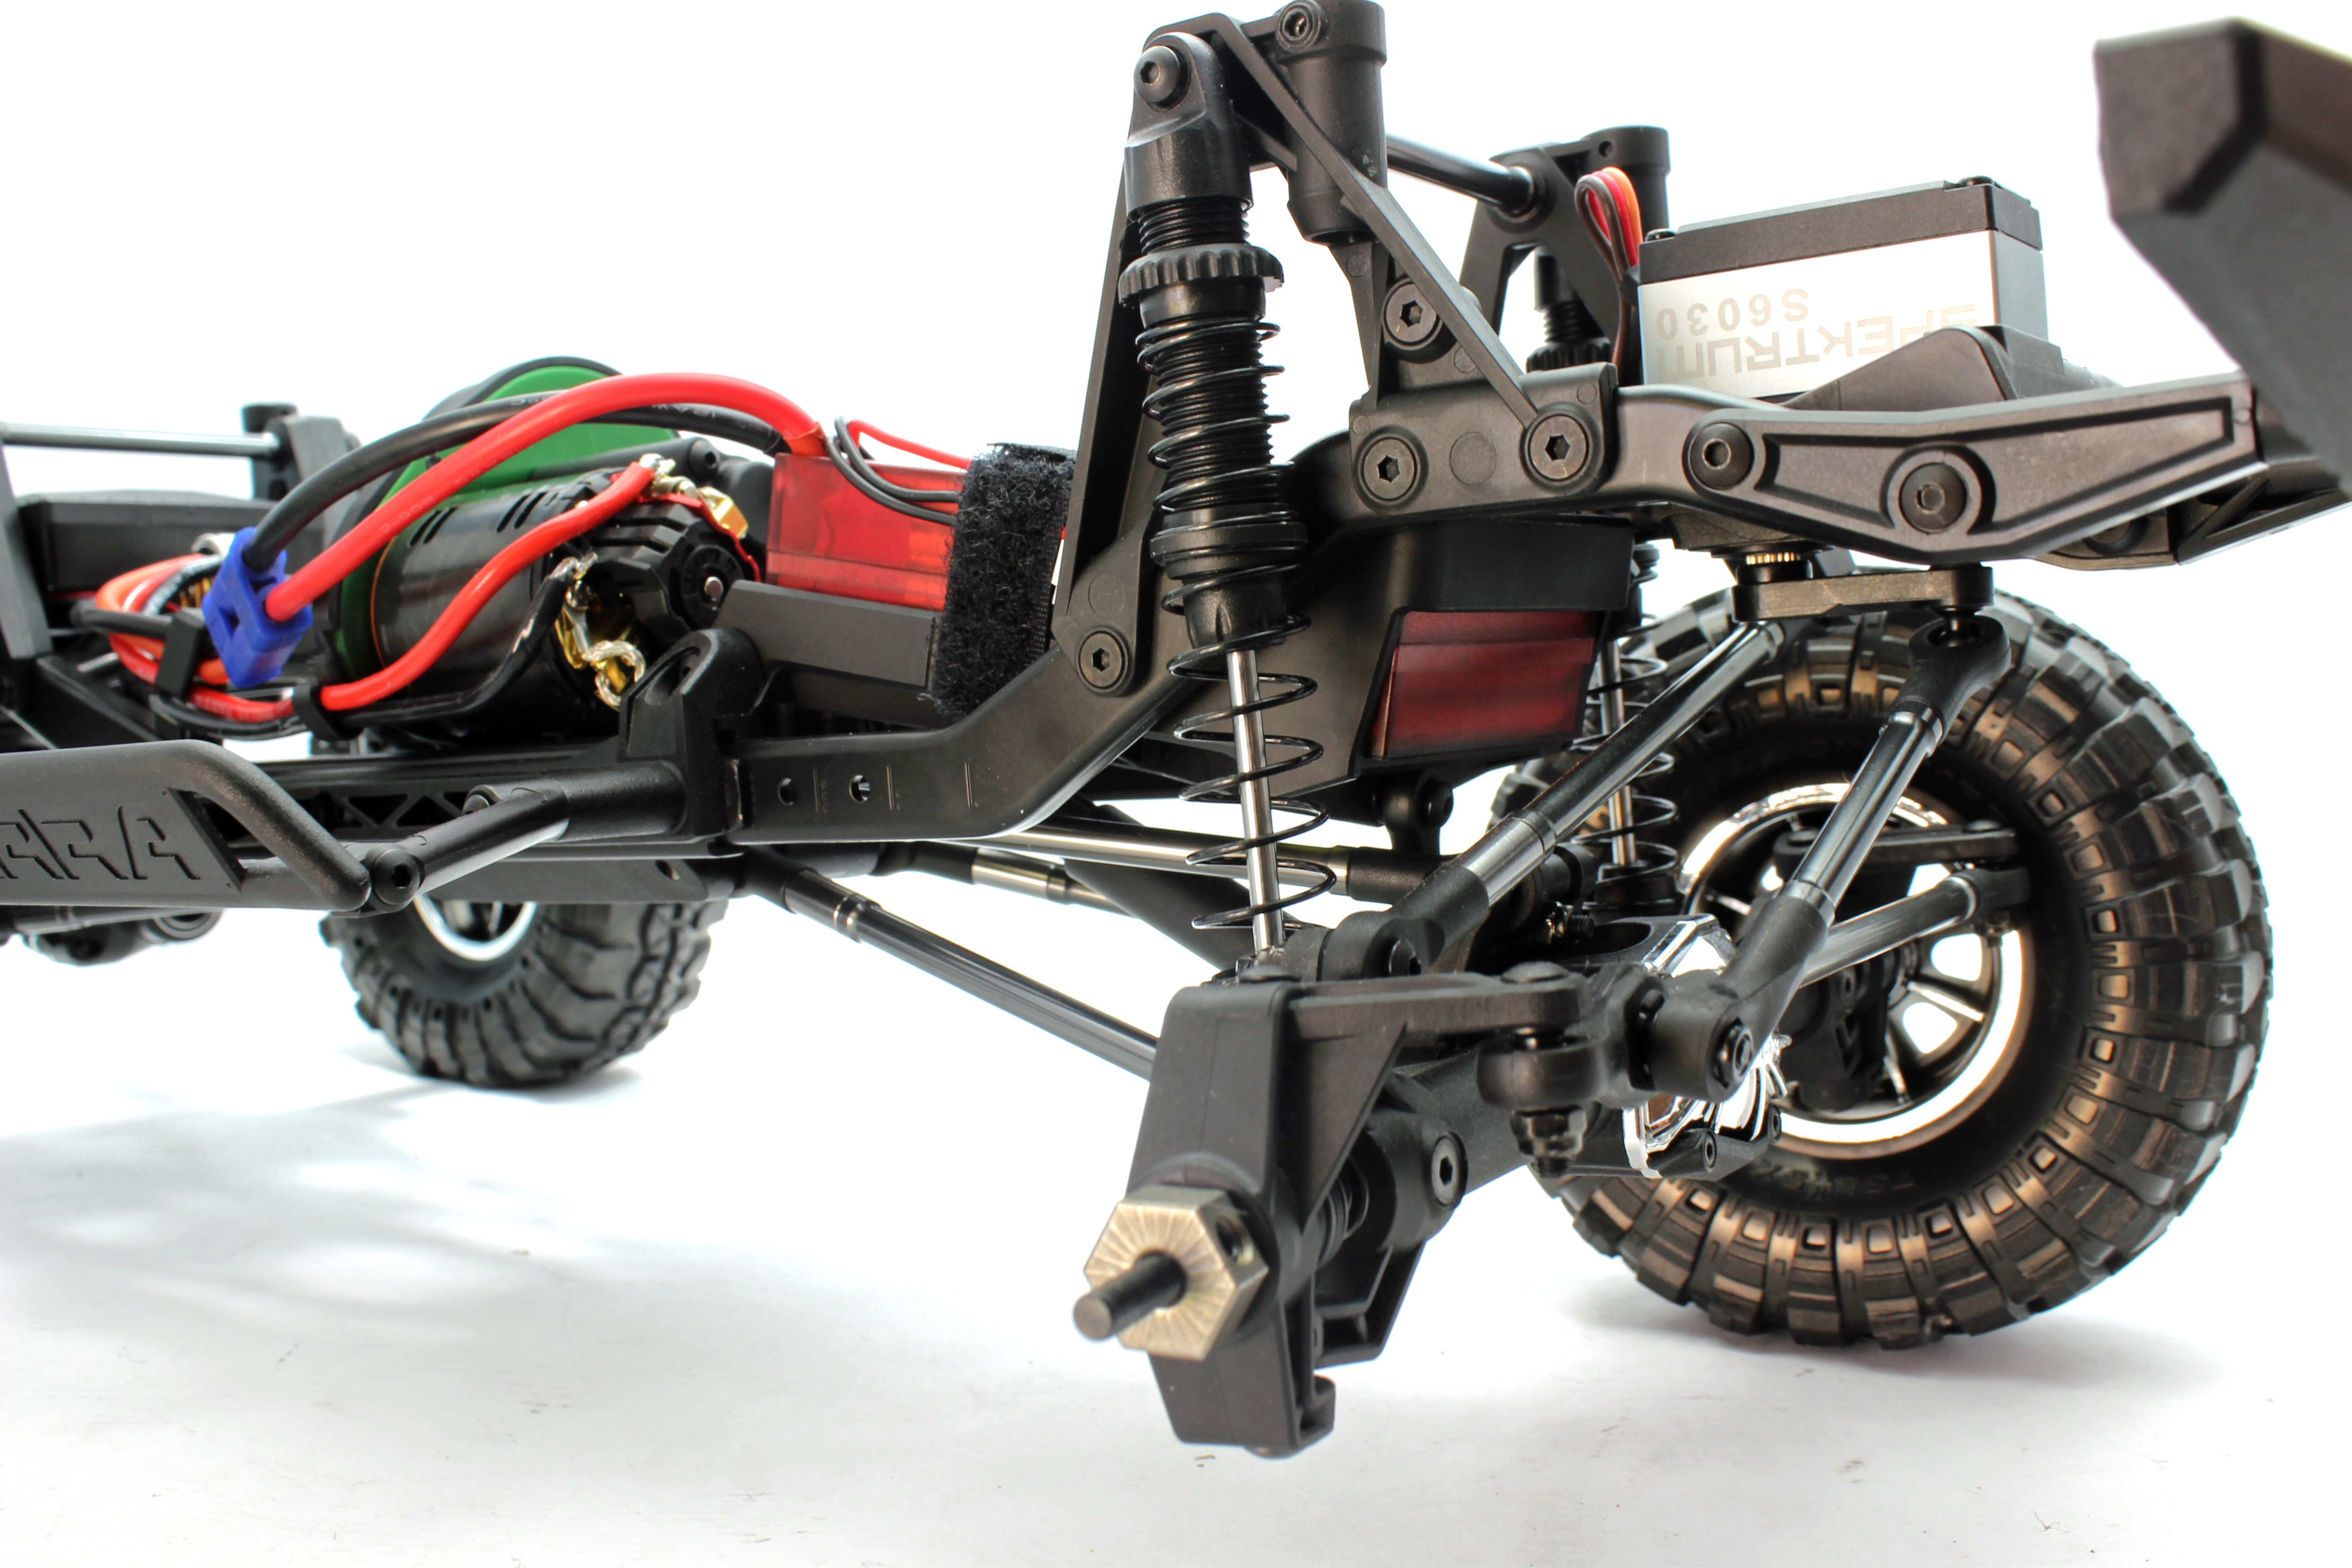 4 wheel drive rc trucks with Kevs Bench Vaterra Ascender Sneak Peak on 1985 Chevrolet K5 Blazer as well New 2018 Chrysler Pacifica Murfreesboro Tn 2c4rc1gg3jr174479 likewise 391353726608 together with Lego Technic Monster Truck 42005 as well Gas Powered Rc Monster Truck 110 2 4g Hummer Remote Control Car.